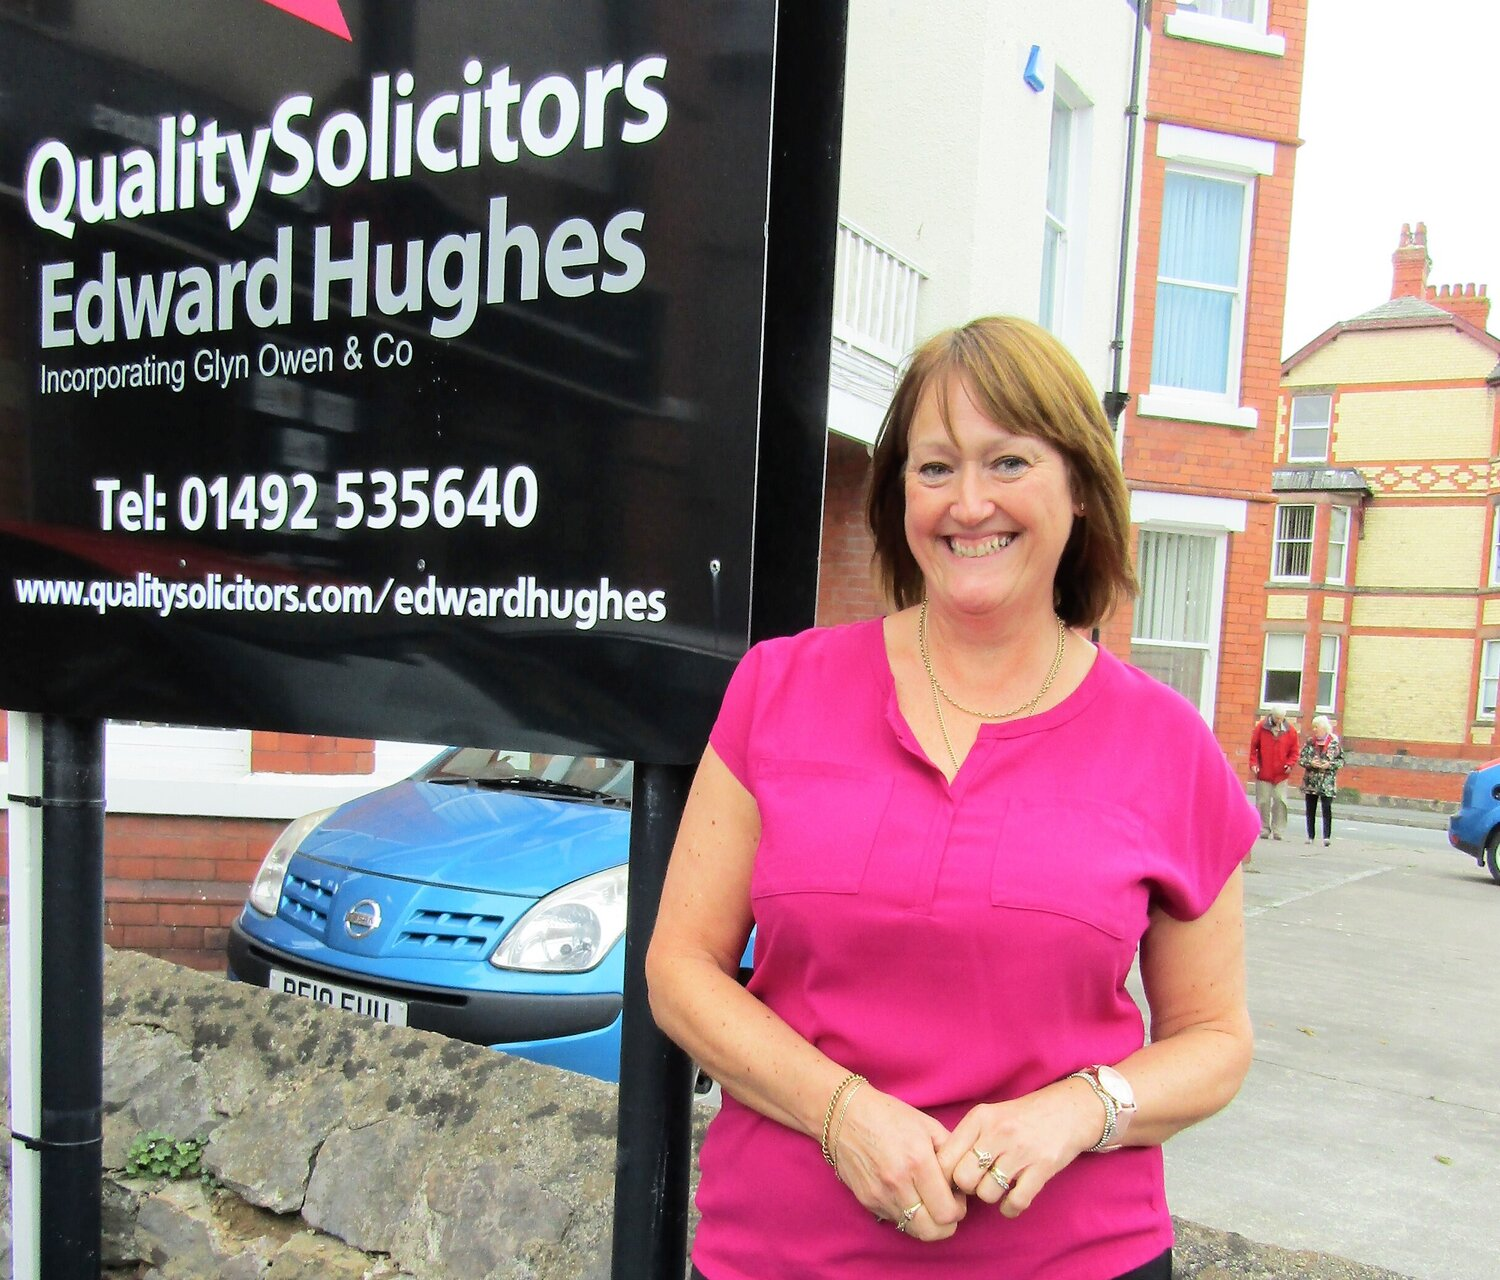 New North Wales law firm manager on how legal eagles coped during COVID lockdown